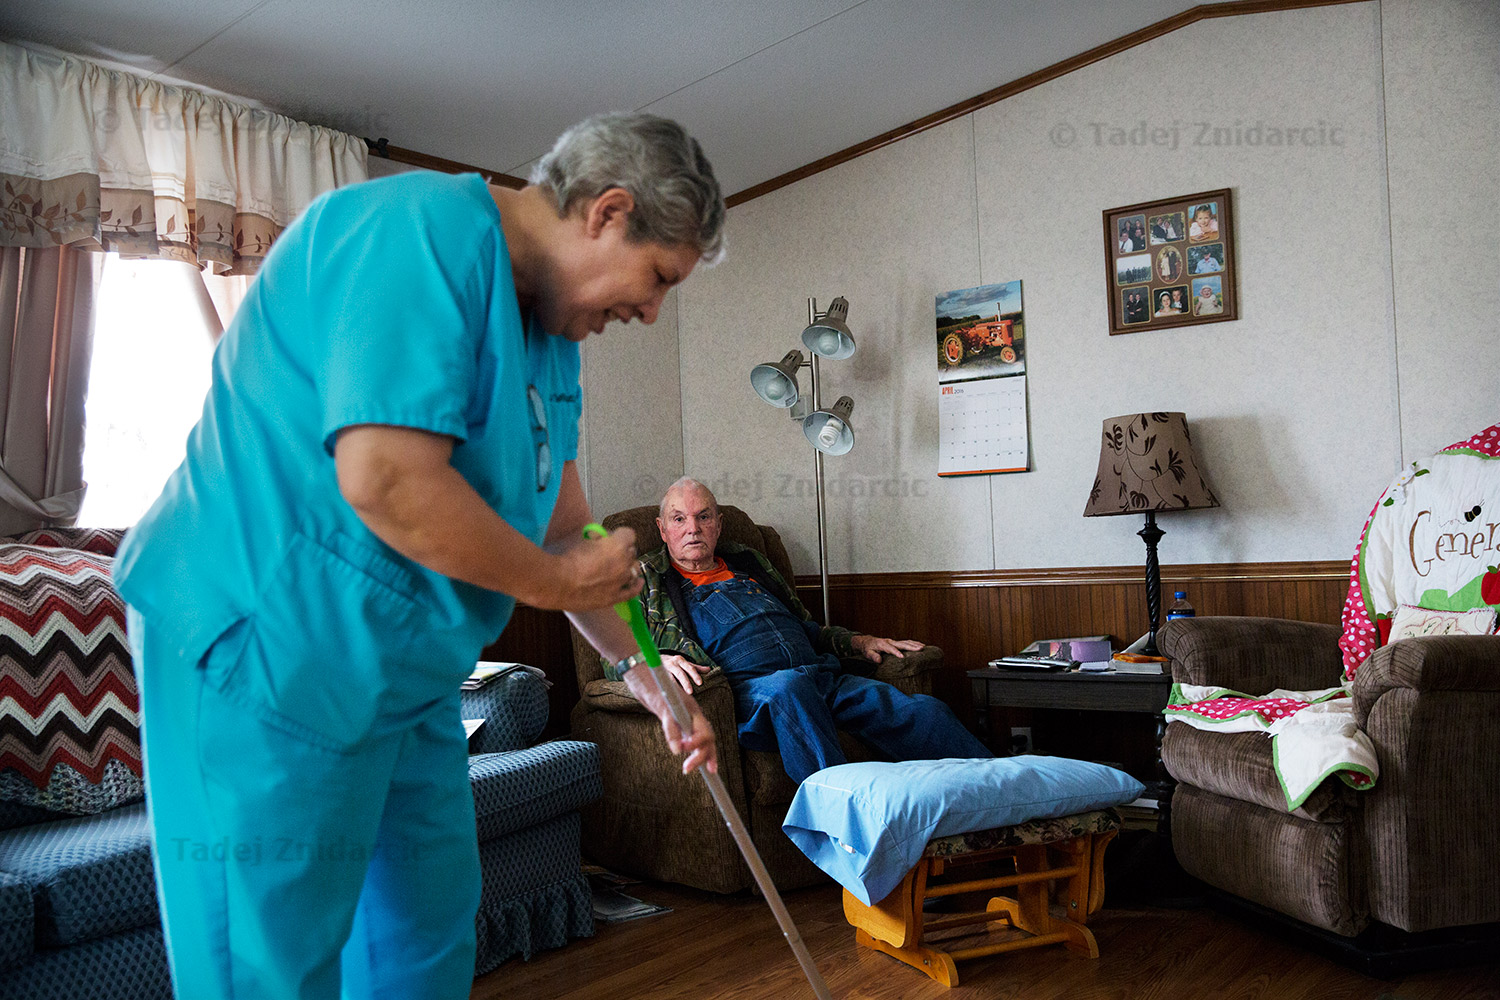 Home care aide Diana chats with Walter while cleaning the floor of his home.